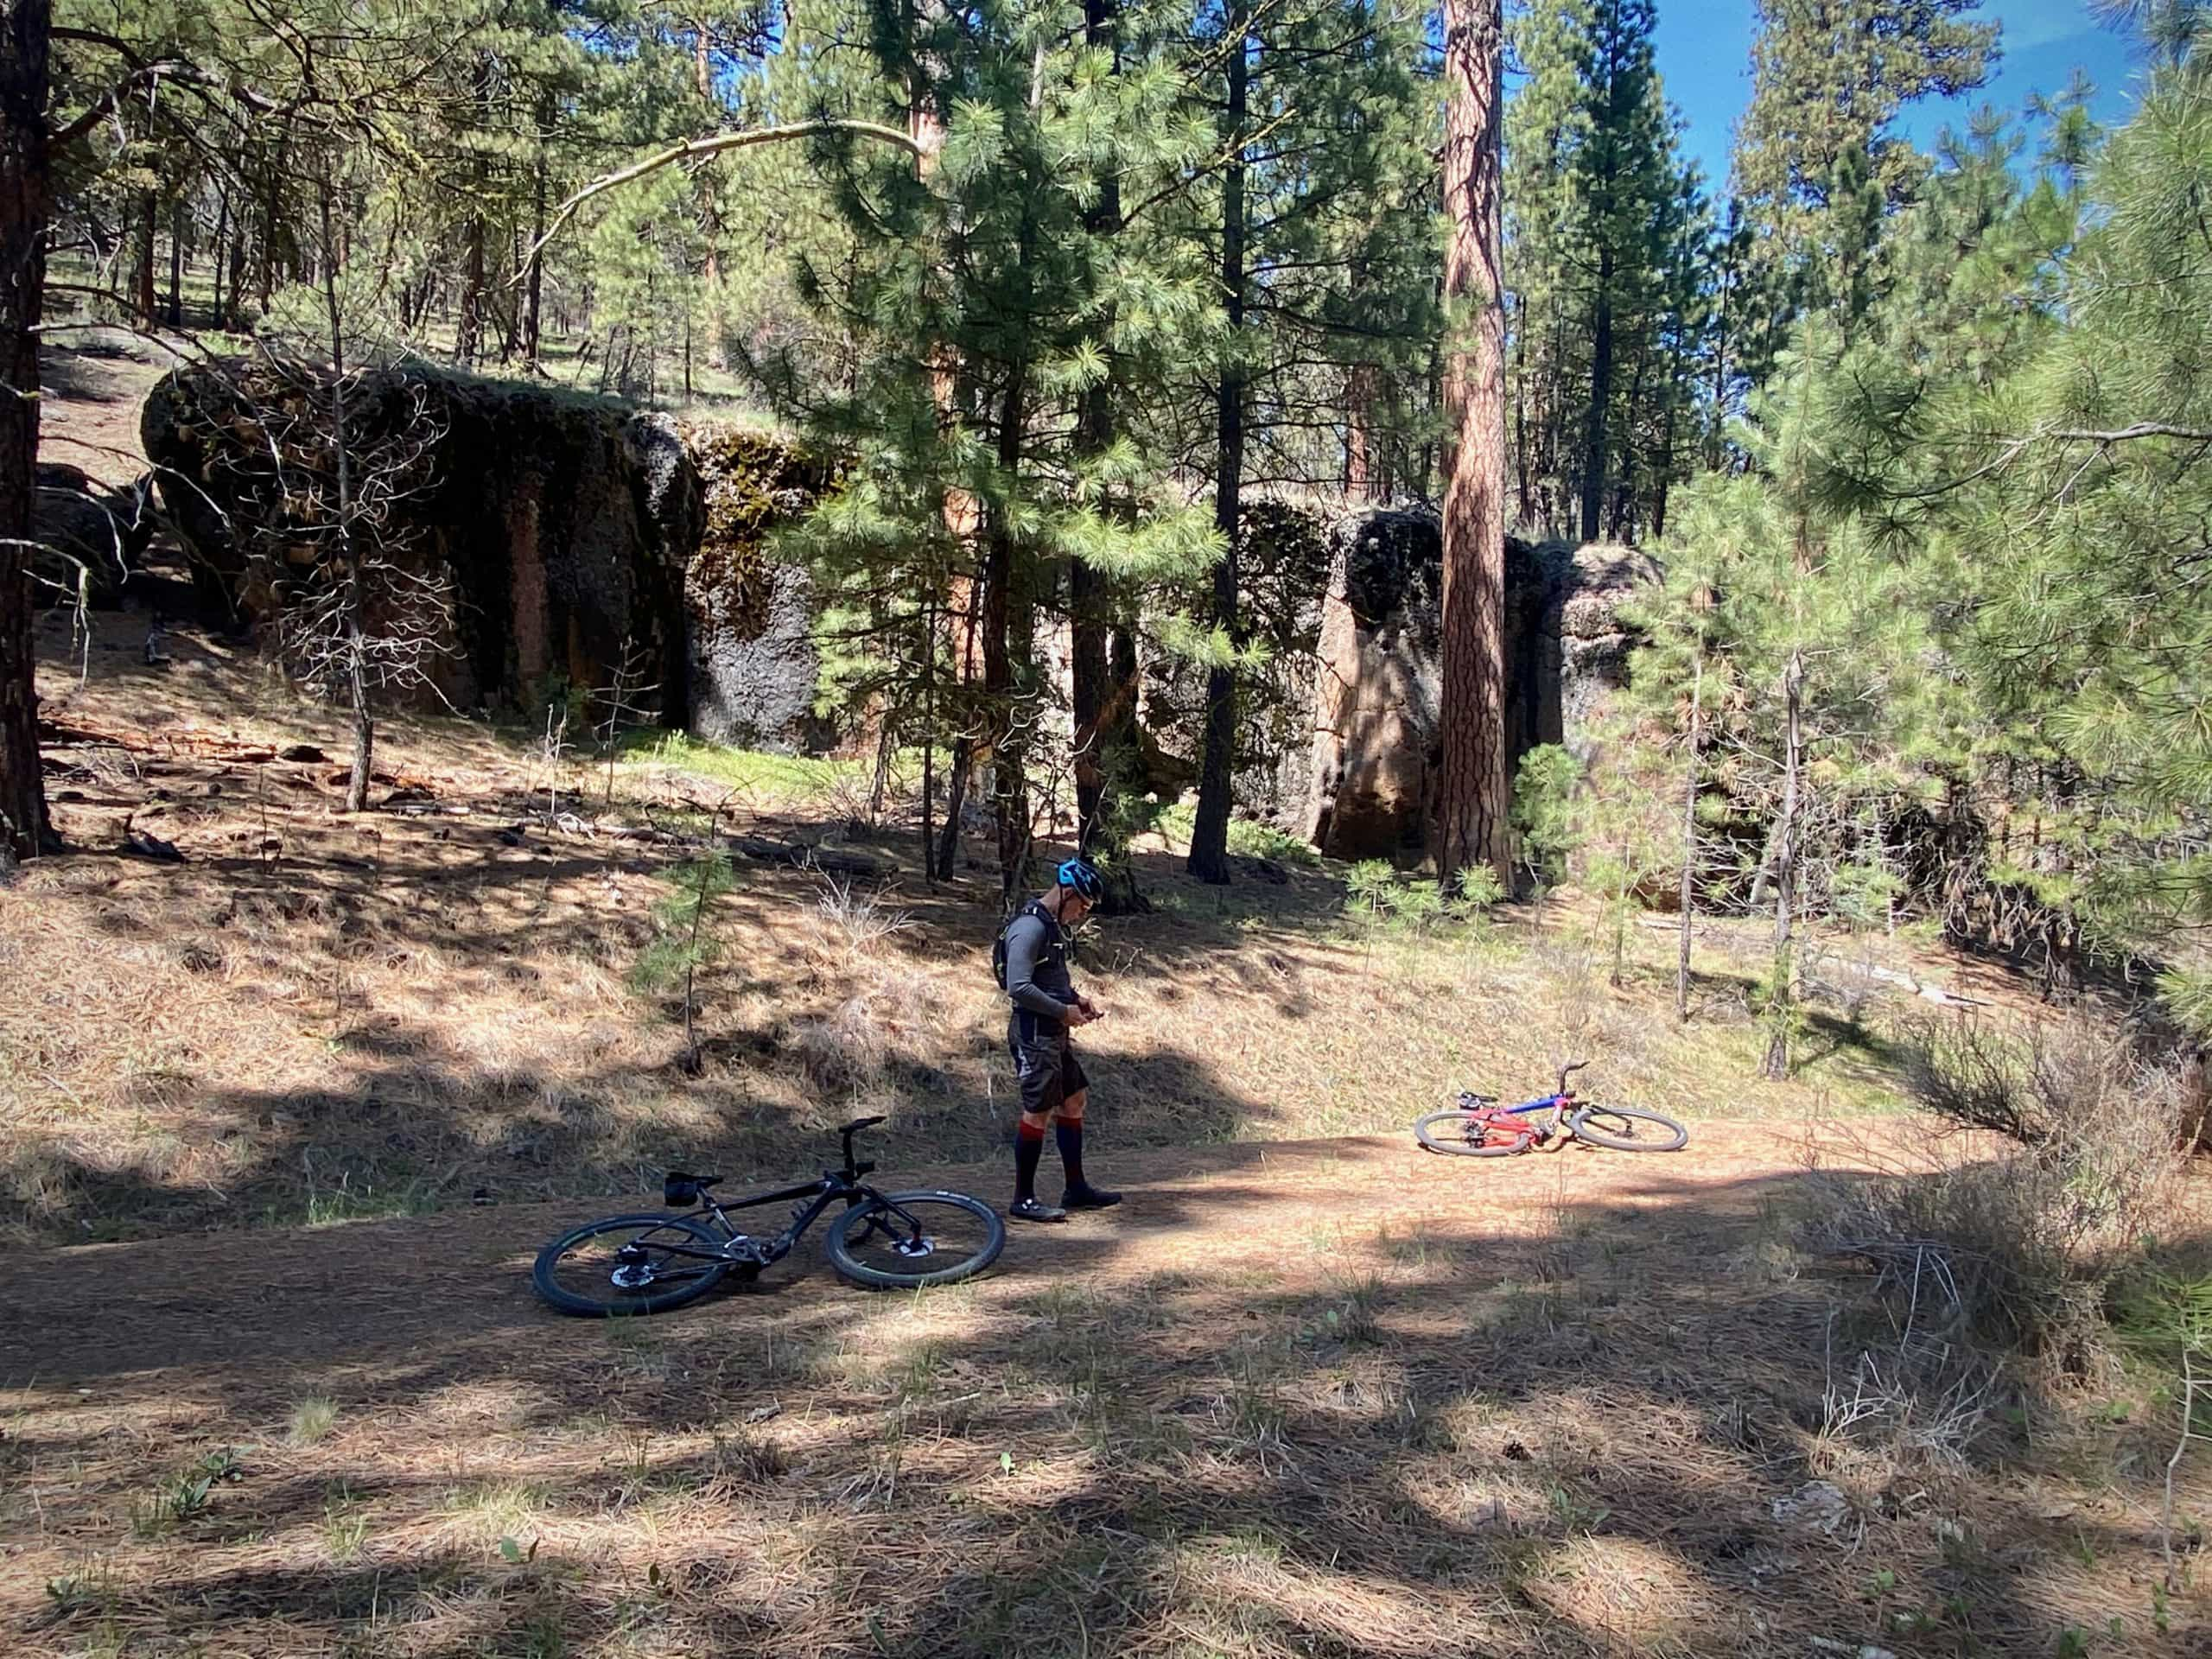 Gravel cyclist checking navigation on Wahoo Roam device in Ochoco National Forest.